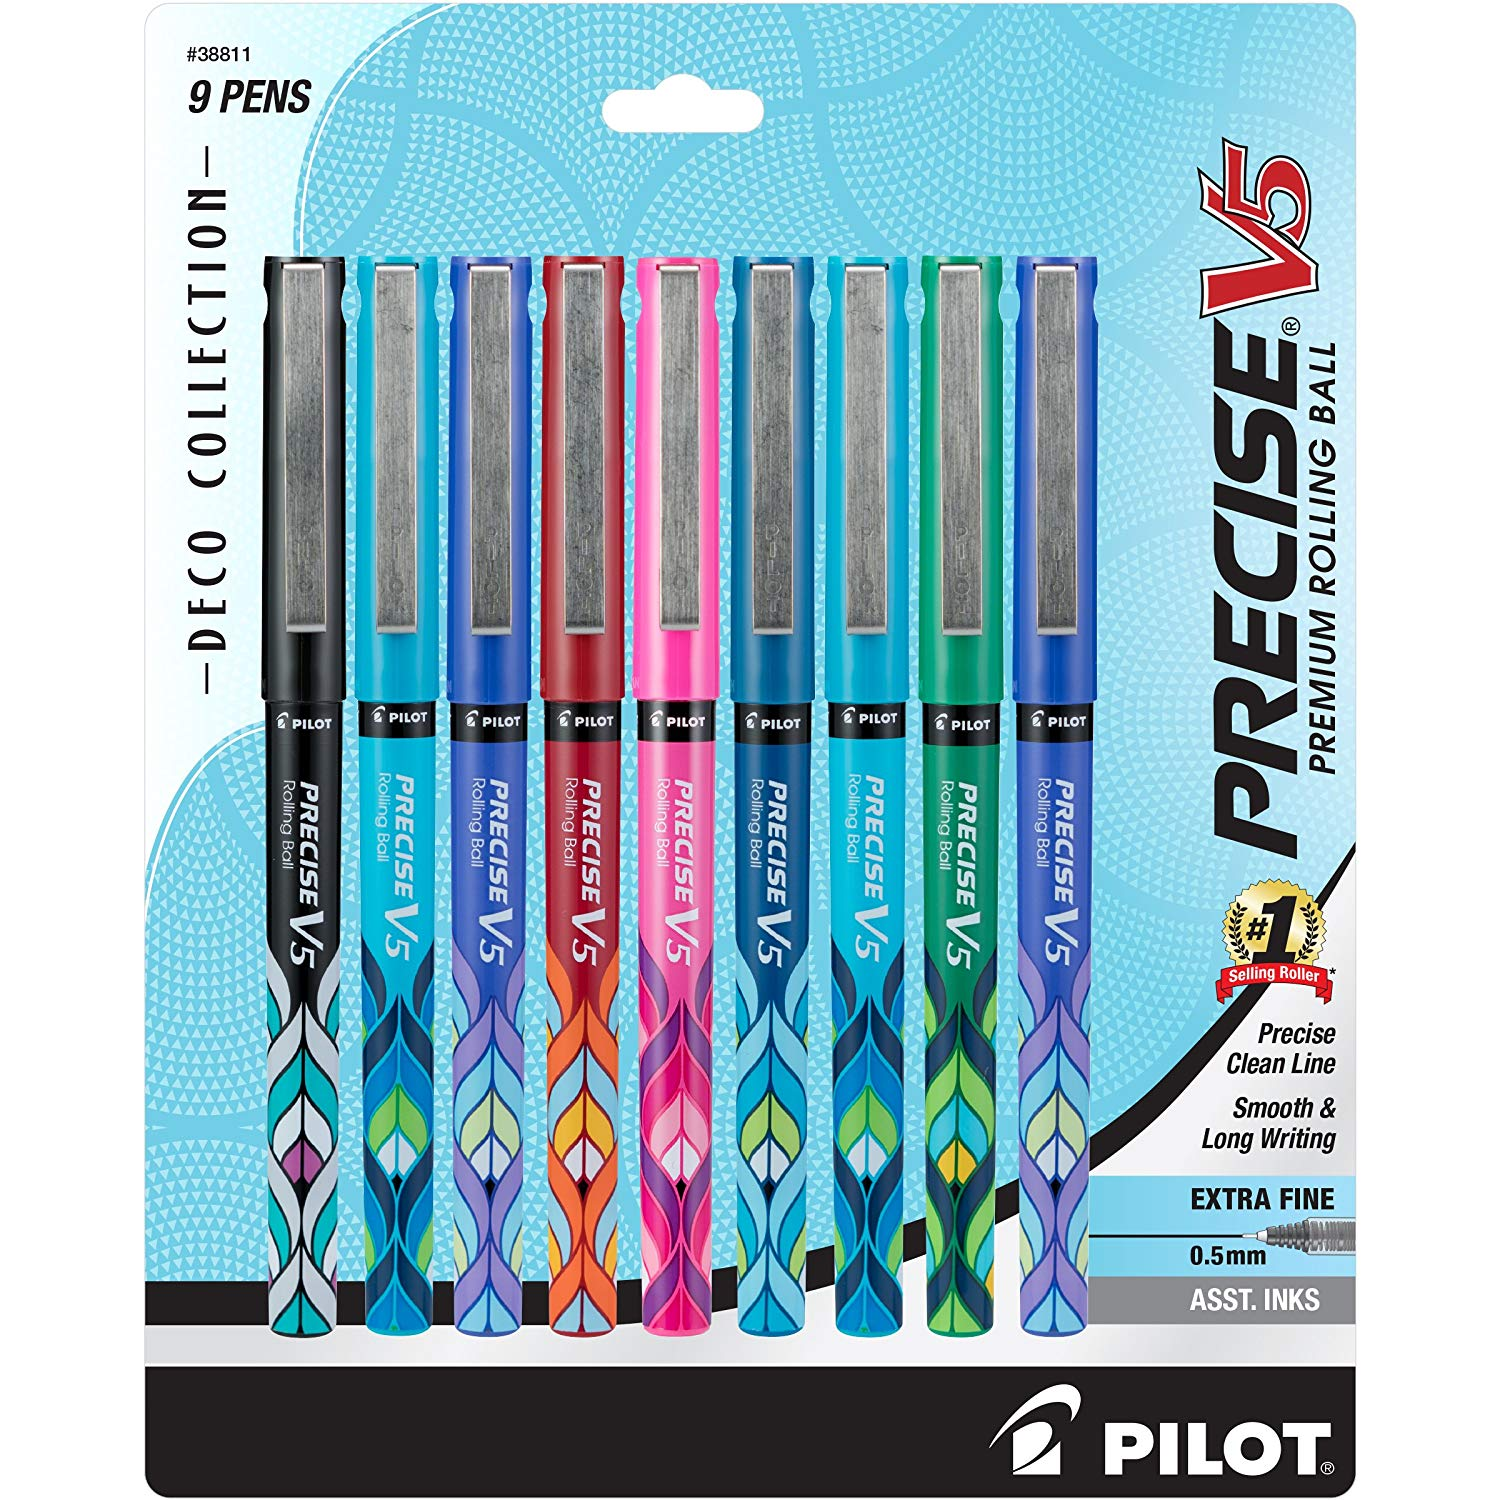 Pilot 38811 Precise V5 Deco Collection Rolling Ball Pens, 0.5mm Extra Fine Point, 9-Pack Assorted Colors